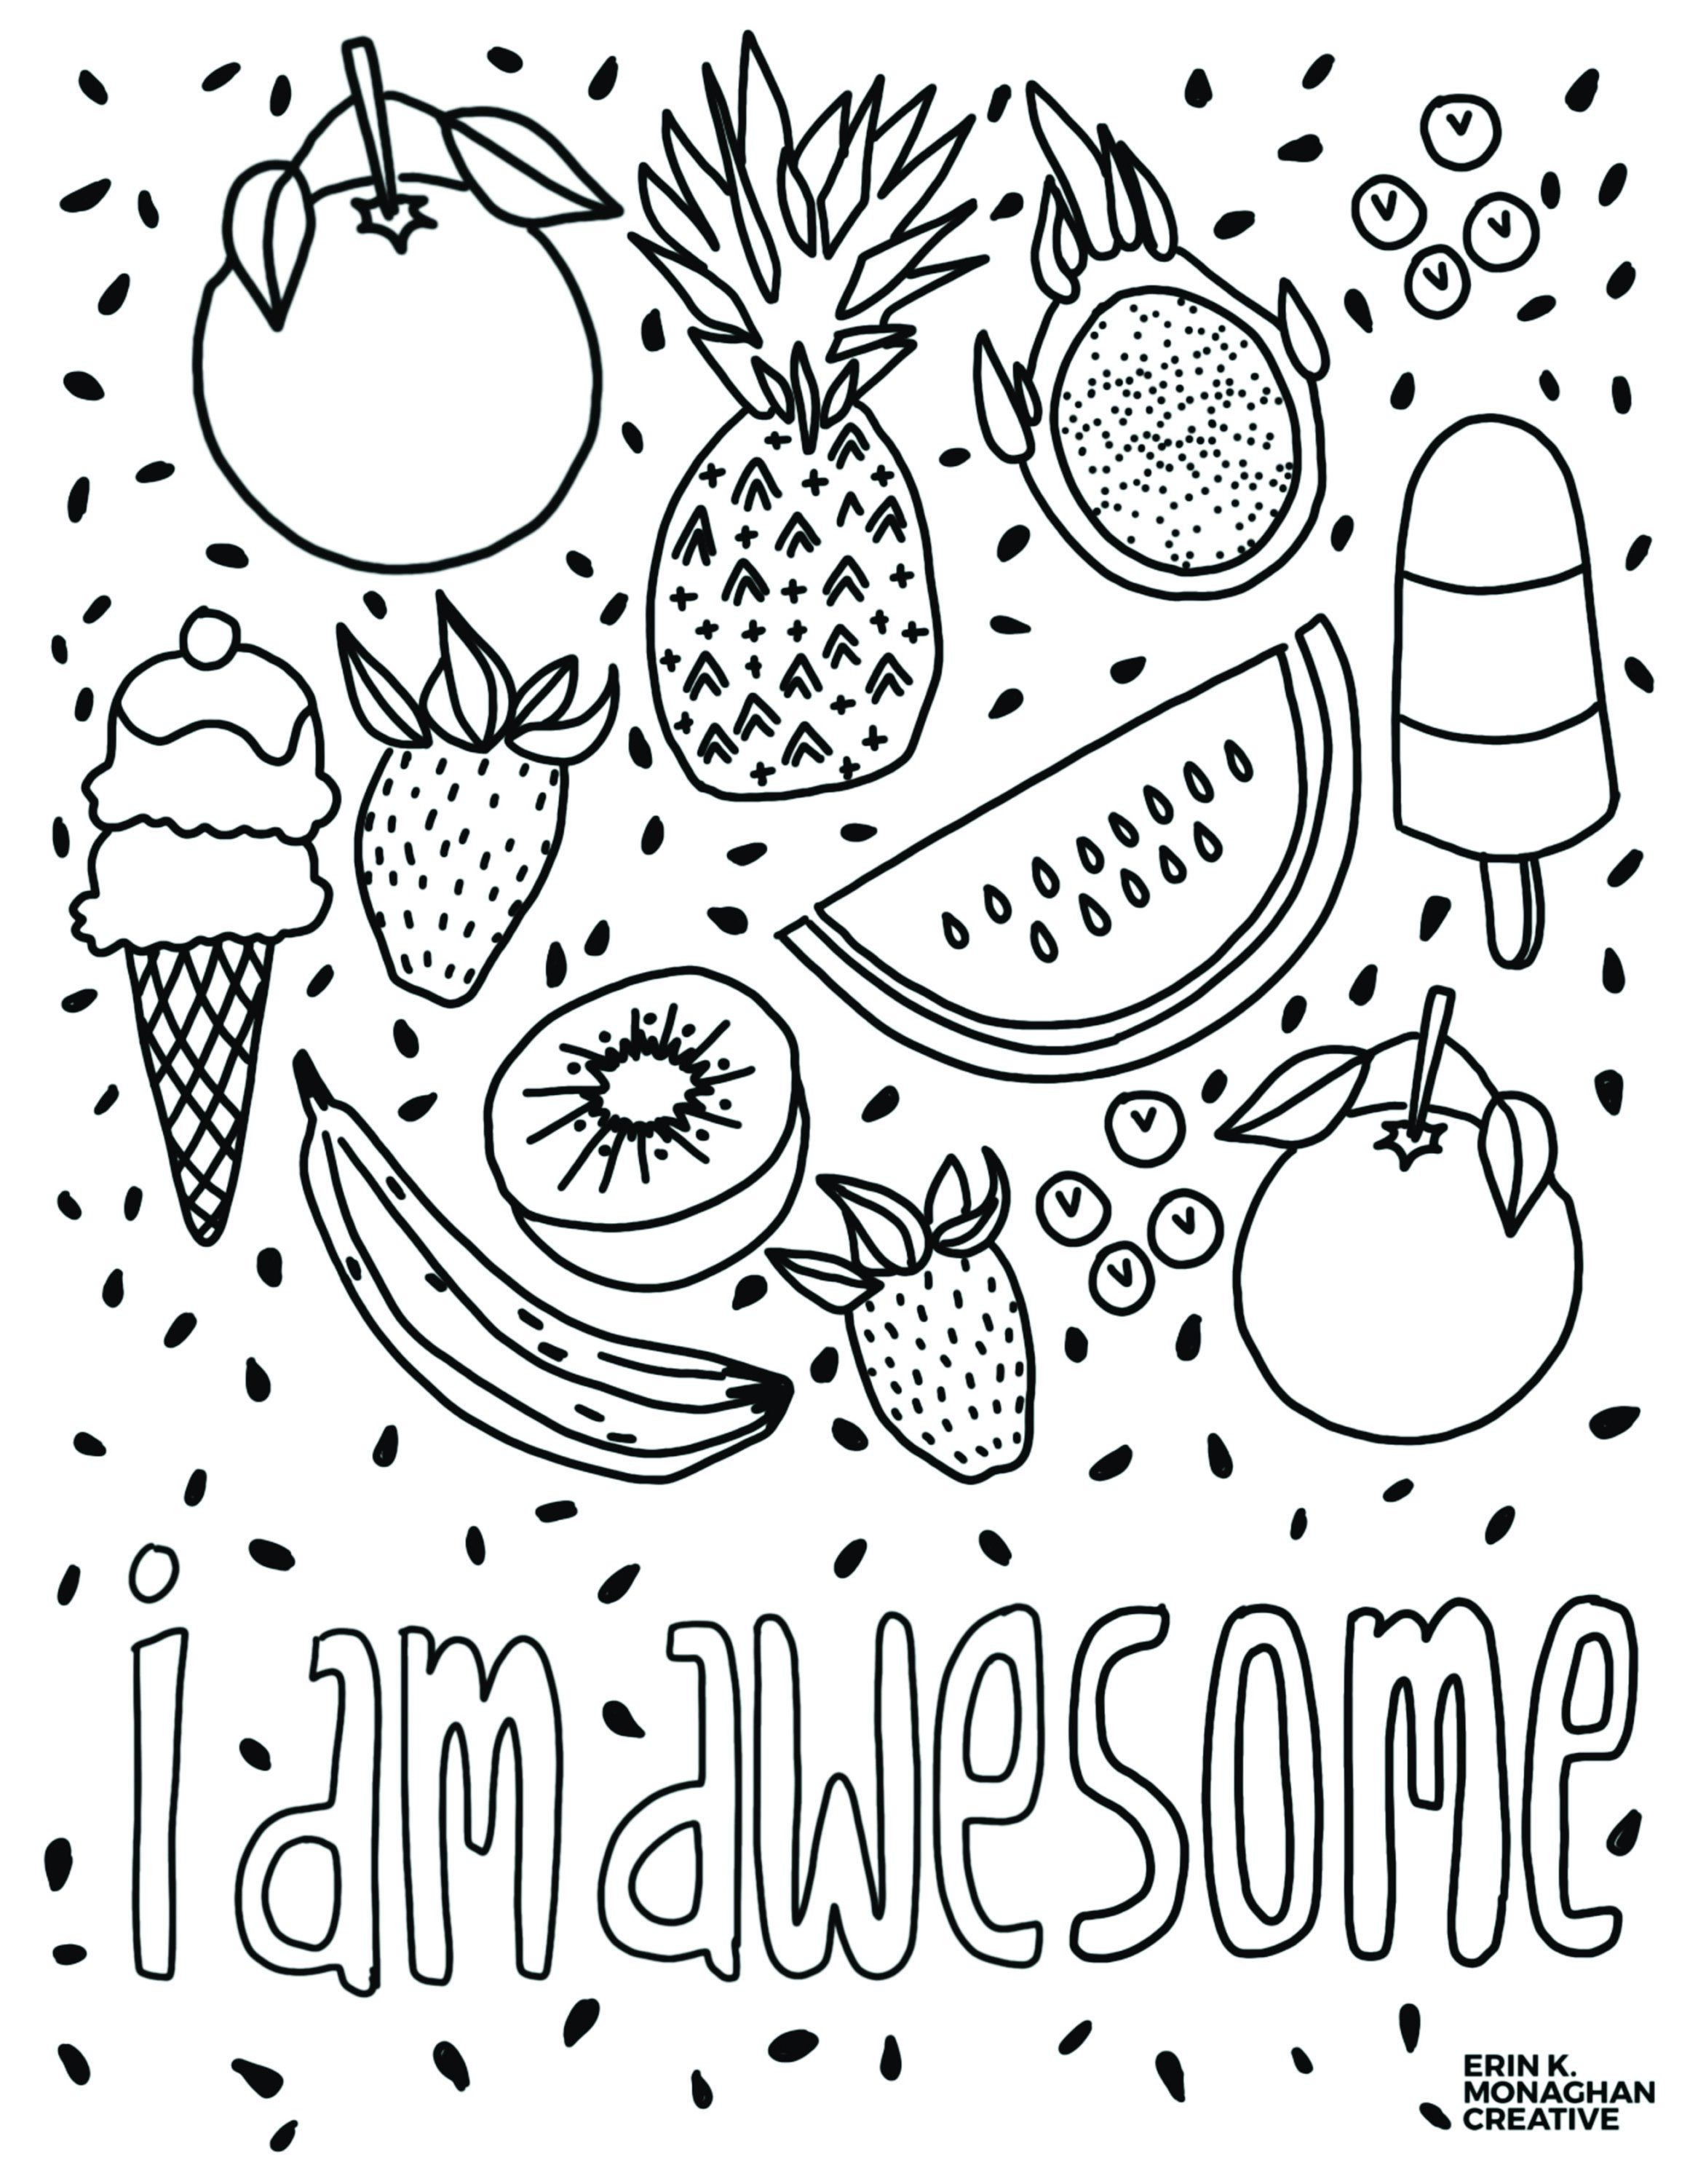 I Am Awesome Coloring Sheet Growth Mindset For Kids Cool Coloring Pages Coloring Pages For Kids Coloring Books